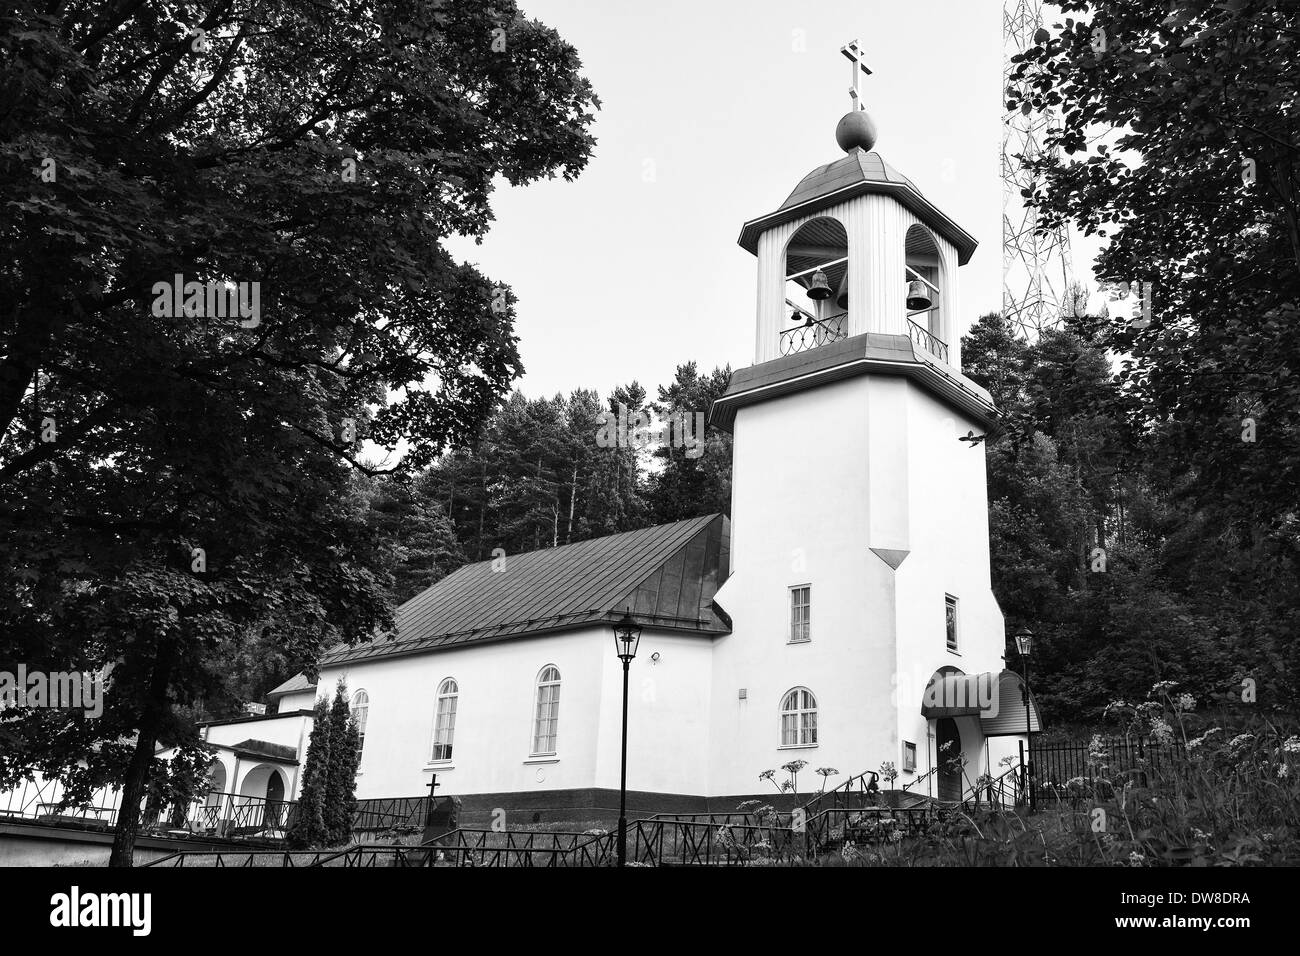 LAHTI, FINLAND - JUNE 10: Holy Trinity Church. The Orthodox Church, (black and white), June 10, 2013 in Lahti, Finland - Stock Image